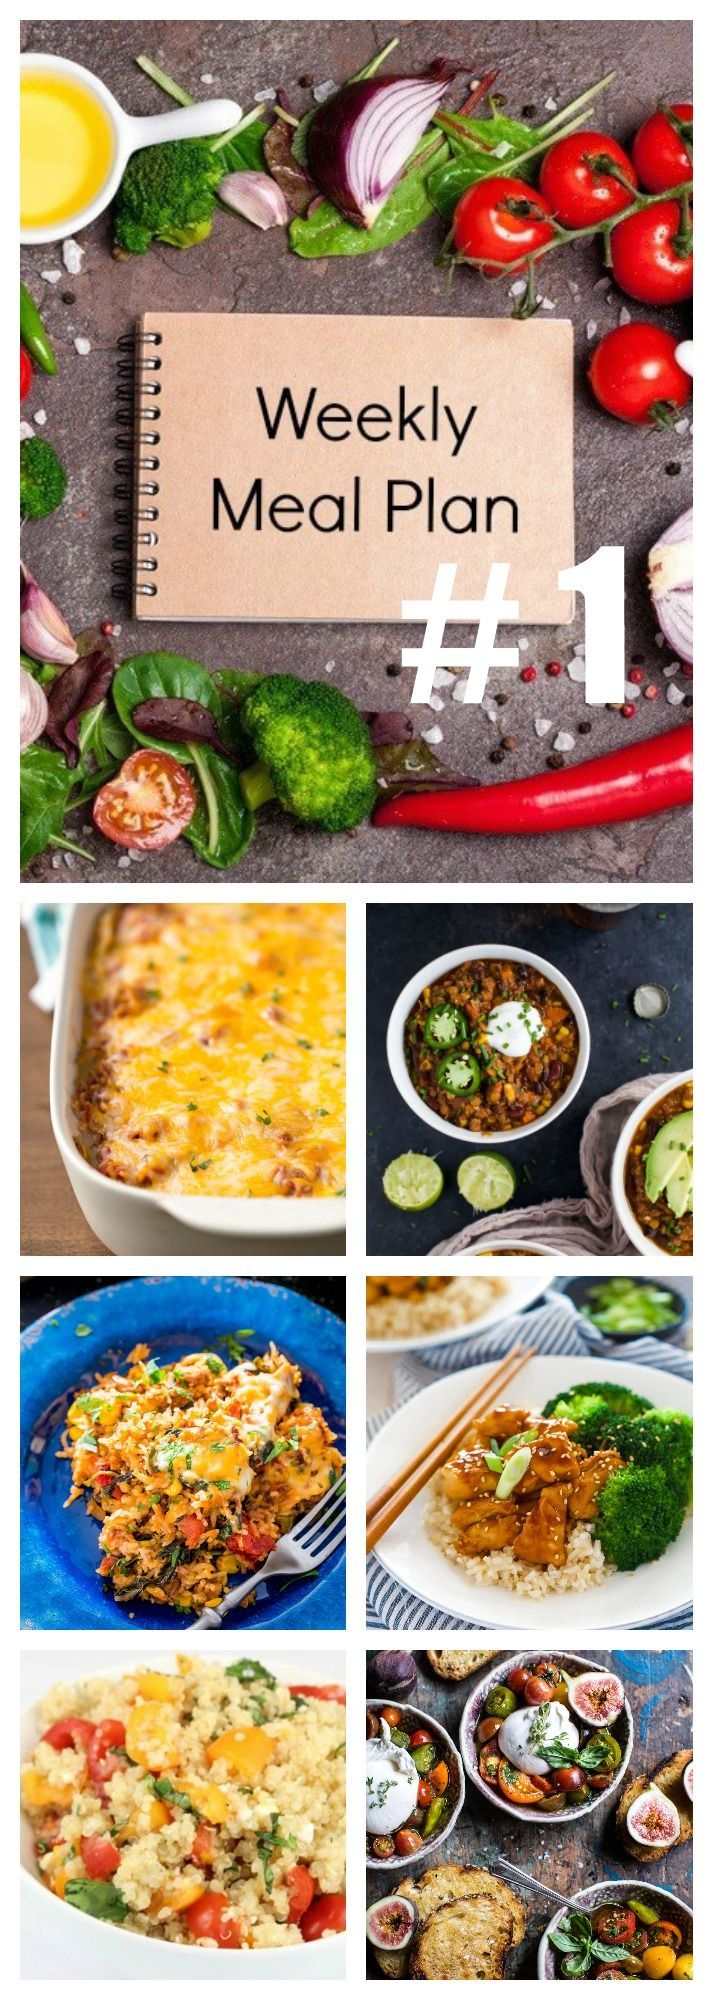 A WEEKLY MEAL PLAN! I HAVE SO MANY DELICIOUS RECIPES FOR  YOU THIS WEEK. LOTS OF MAIN DISHES TO ADD TO YOUR DINNER LIST. PLUS A BREAKFAST, LUNCH AND EVEN A DESSERT,